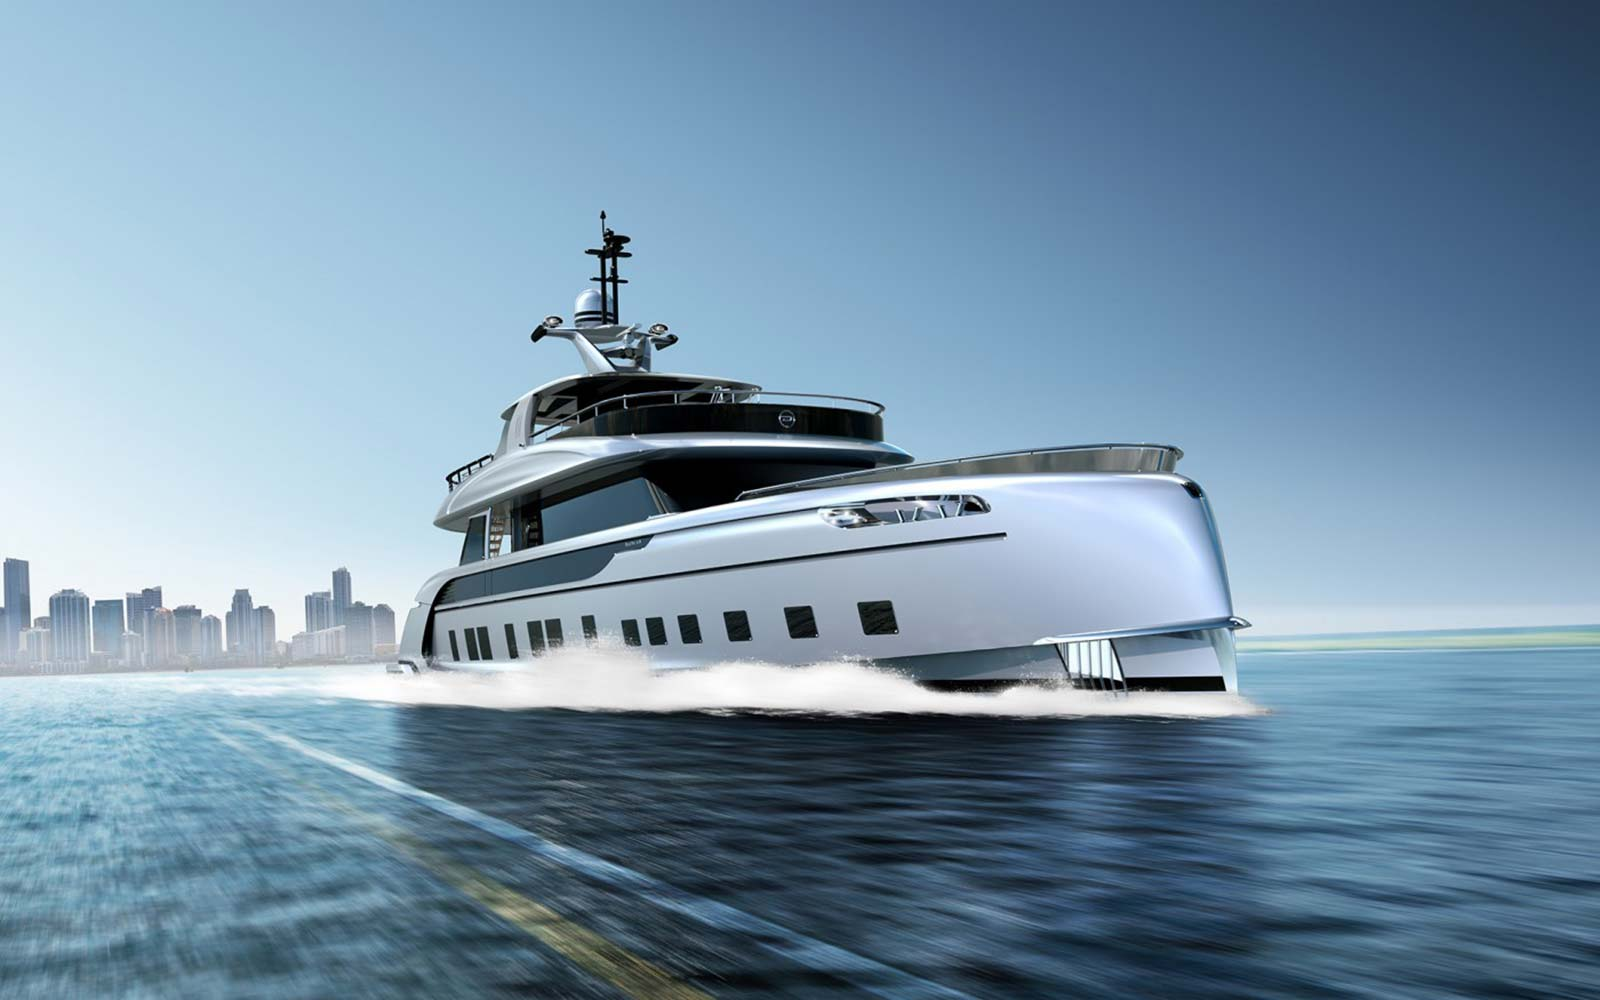 Design your own multi-million dollar yacht